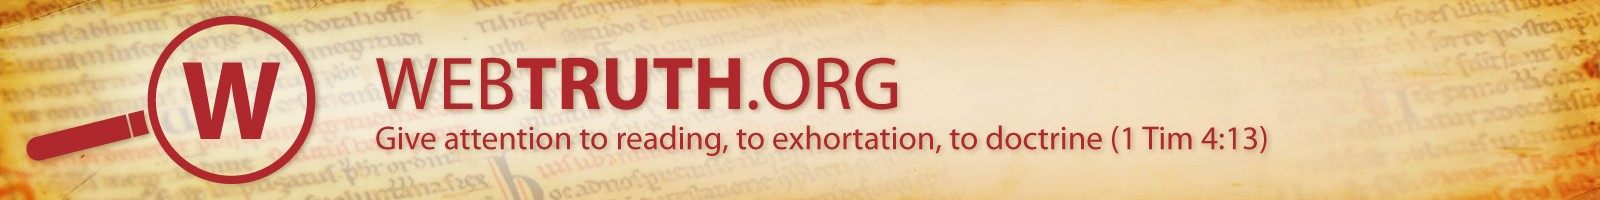 Web Truth – Give attention to reading, to exhortation, to doctrine (1 Tim 4:13)